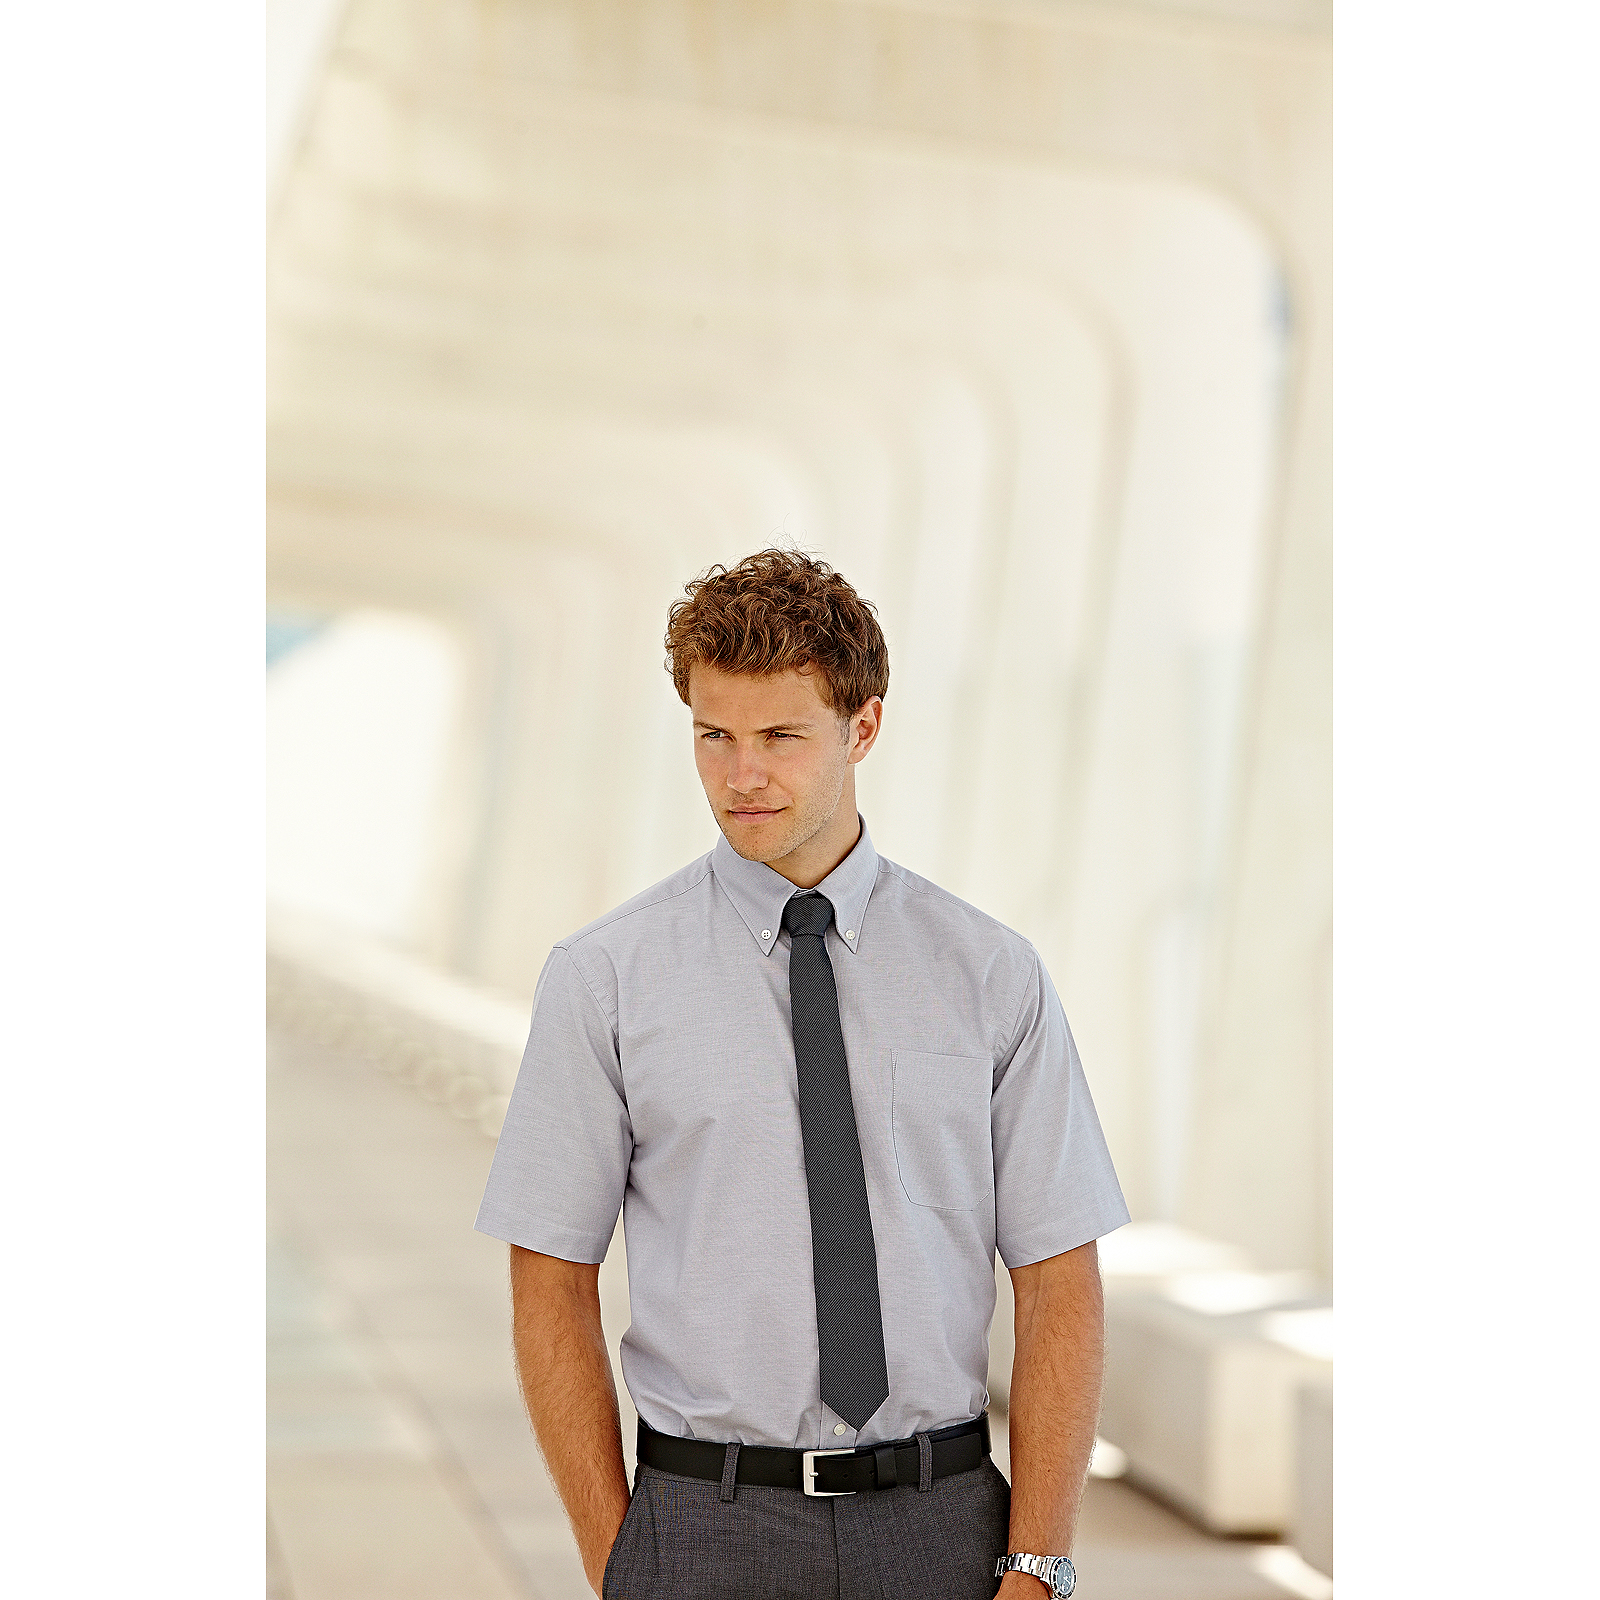 Details about Fruit of the Loom Mens Short Sleeves Oxford Shirt Smart Fit Office Wear Shirts